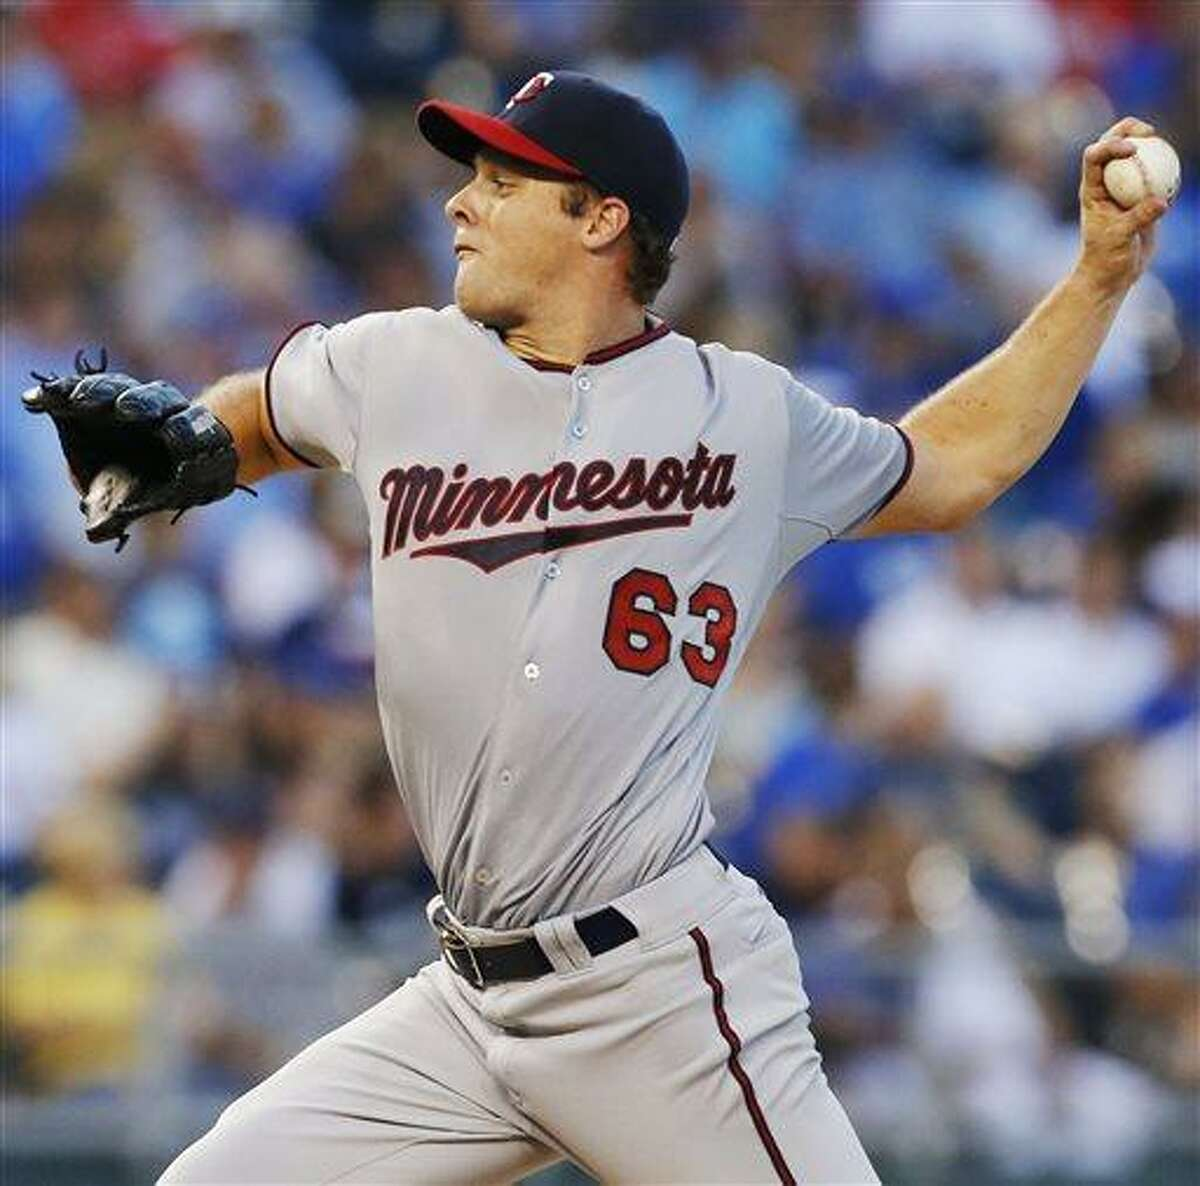 Minnesota Twins starting pitcher Andrew Albers delivers to a Kansas City Royals batter during the third inning of a baseball game at Kauffman Stadium in Kansas City, Mo., Tuesday, Aug. 6, 2013. (AP Photo/Orlin Wagner)